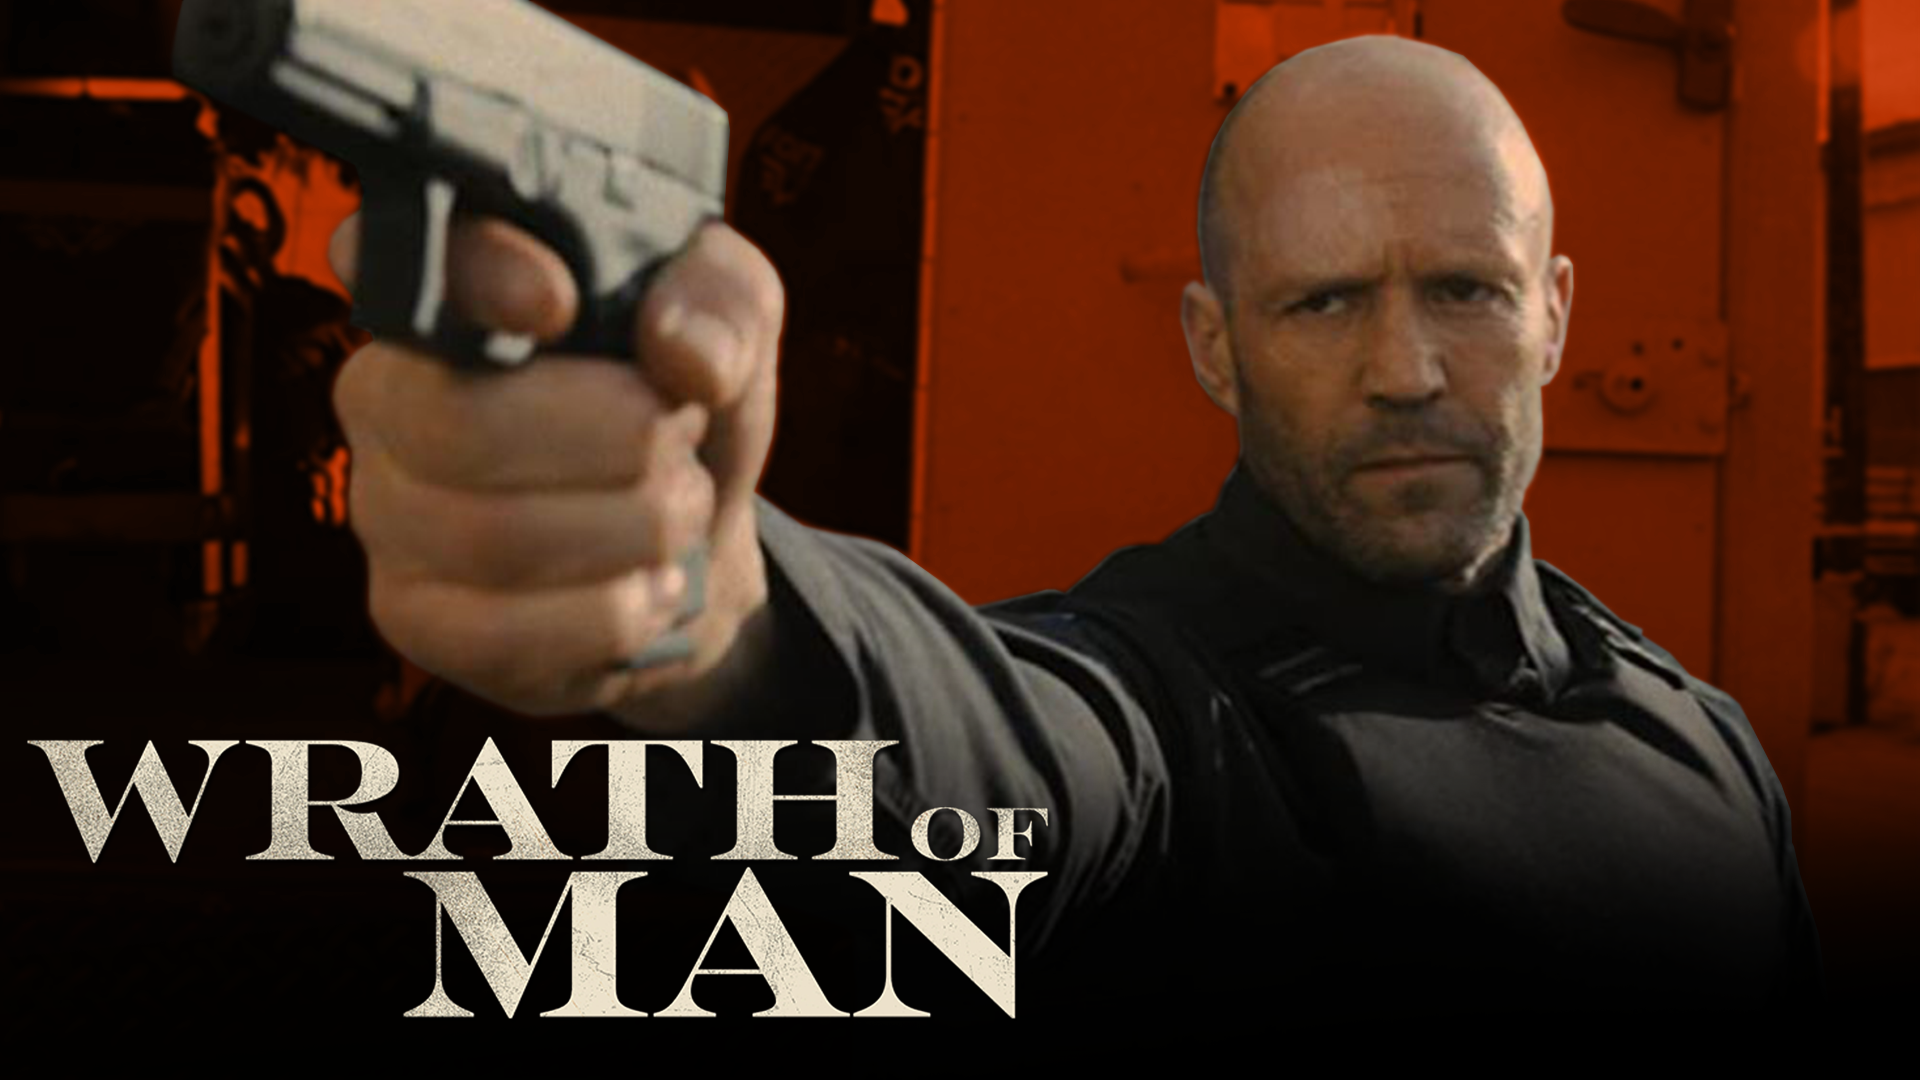 There's not enough going for Guy Ritchie's Wrath of Man